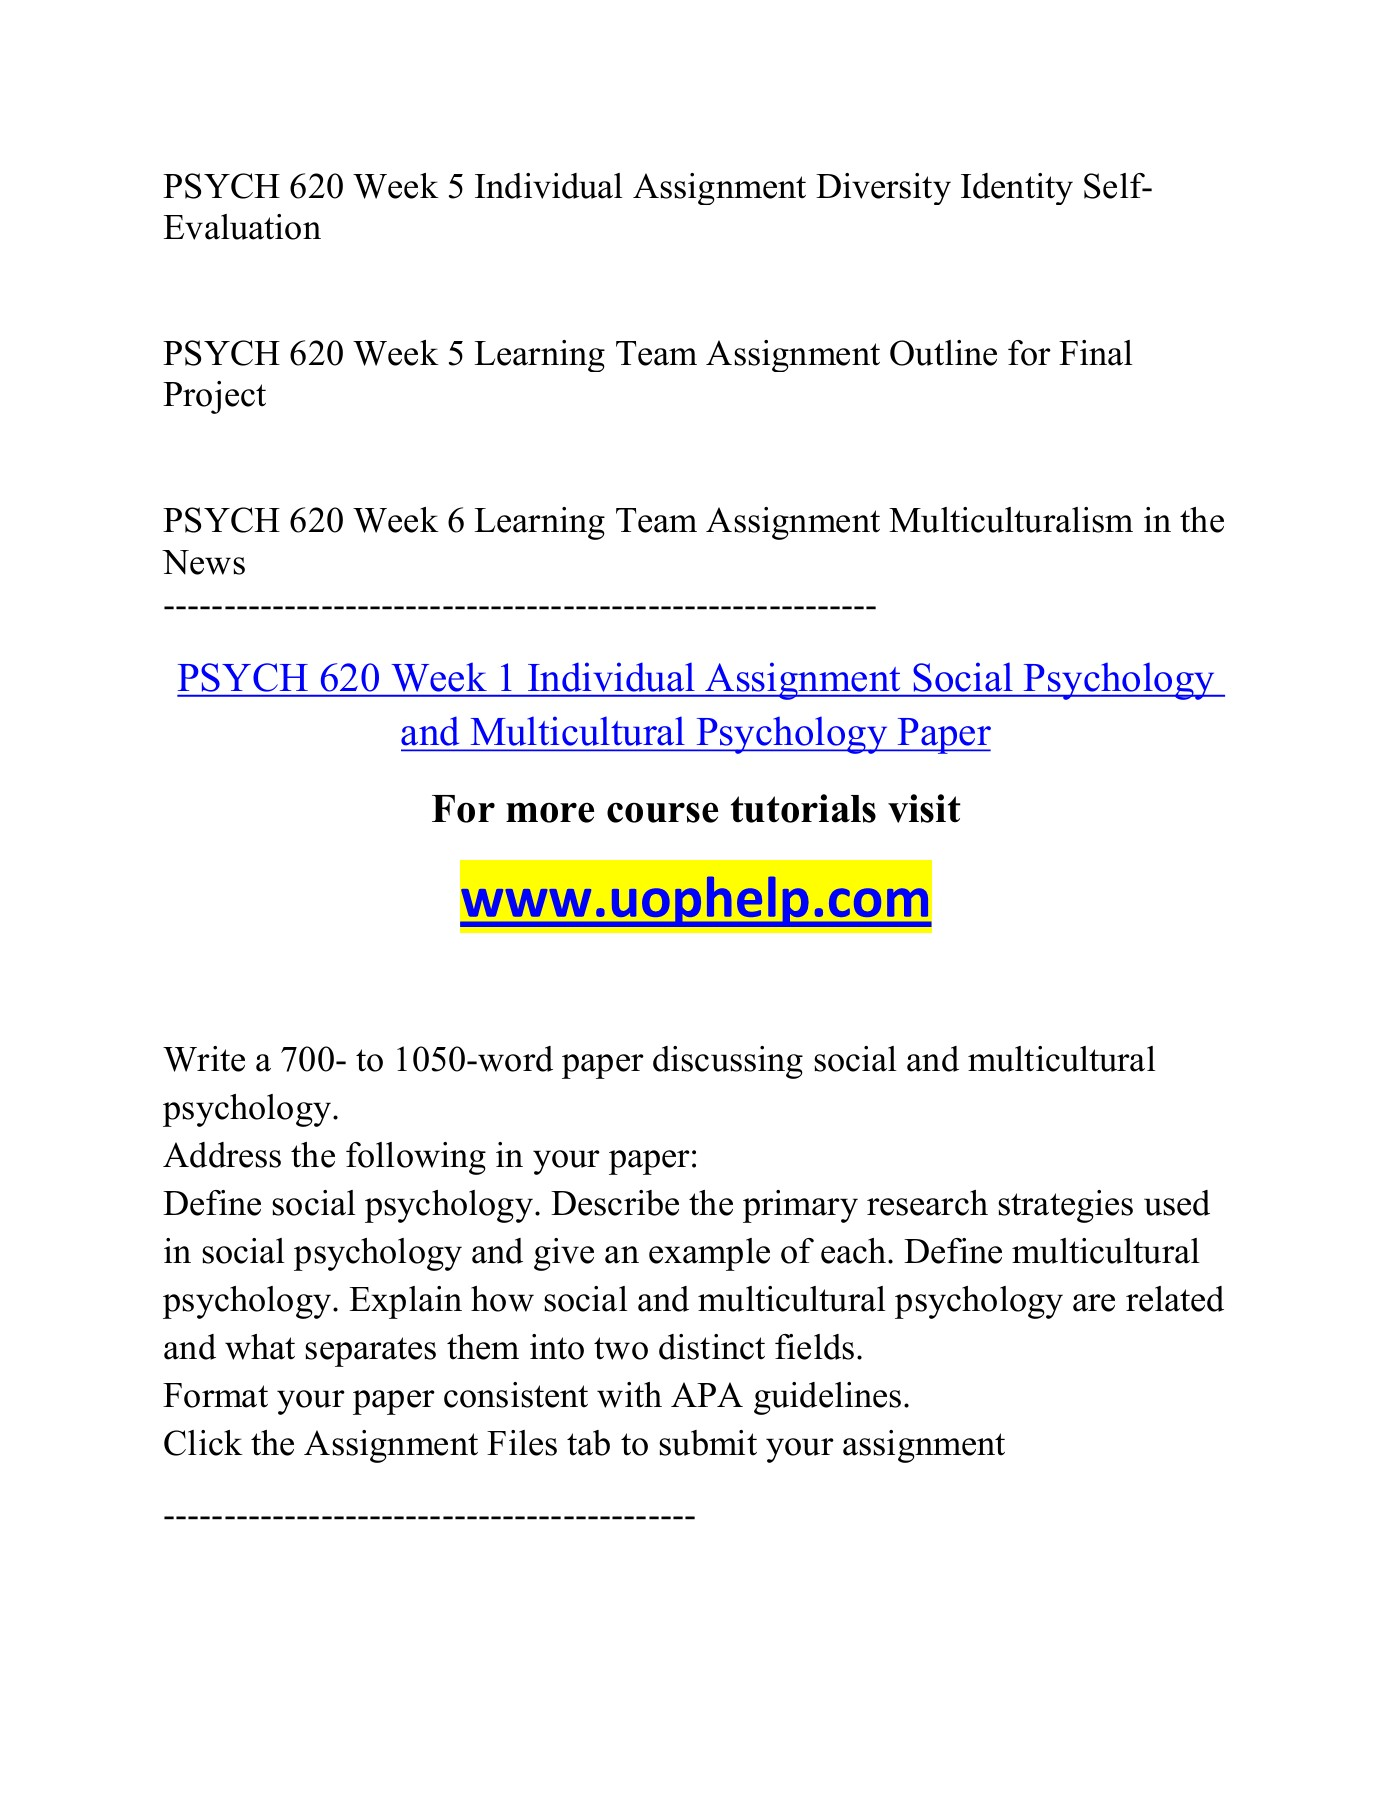 PSYCH 620 Read, Lead, Succeed/Uophelpdotcom Pages 1 - 8